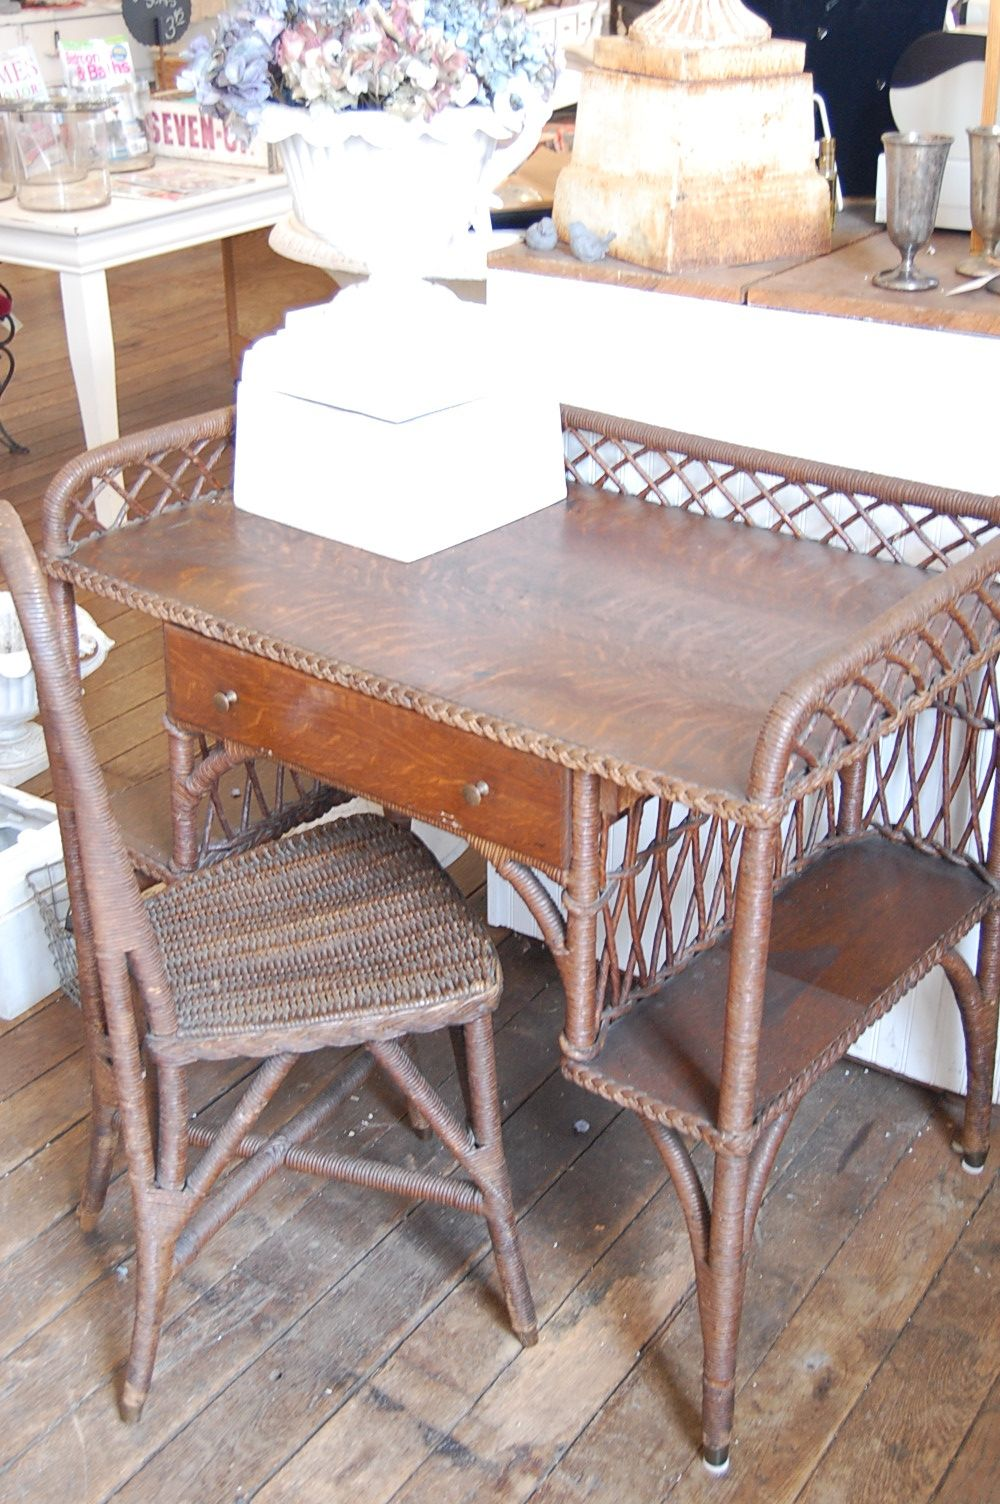 Antique Wicker Desk And Chair - Antique Wicker Desk And Chair Http://devintavern.com Pinterest